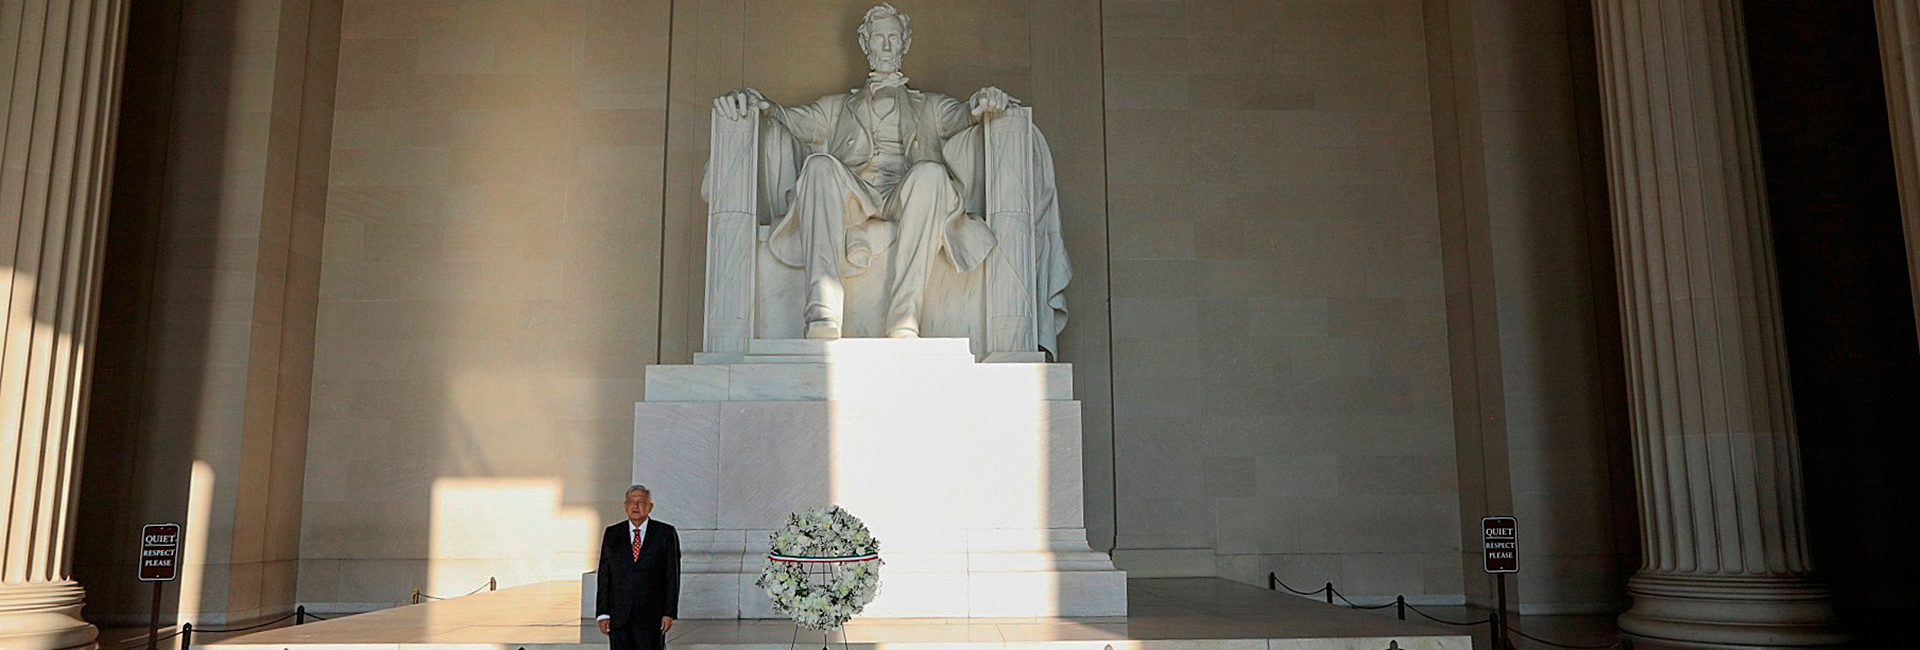 Andrés Manuel López Obrador, in front of the Lincoln memorial on Wednesday in Washington (photo: EFE)